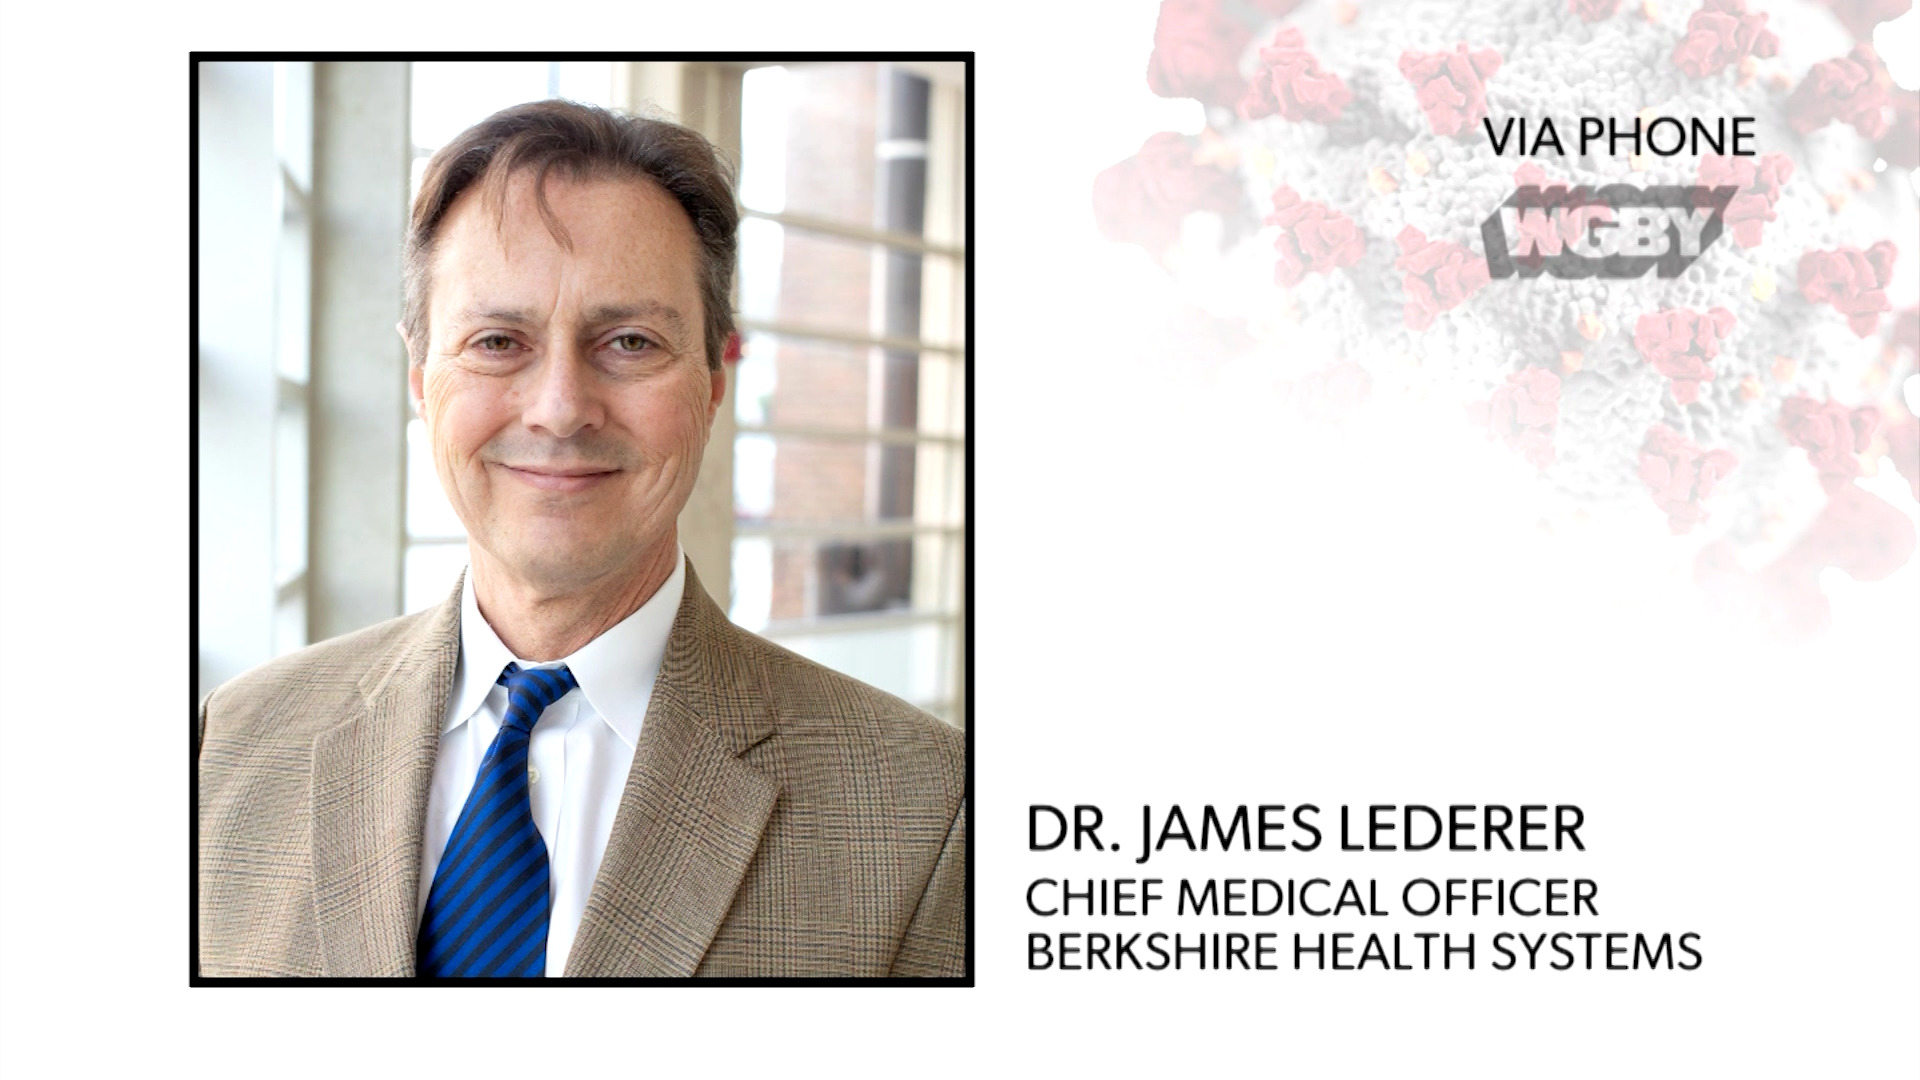 Berkshire Health Systems Chief Medical Officer Dr. James Lederer shares how BHS is bracing for a projected $38 million-dollar deficit in March and April.